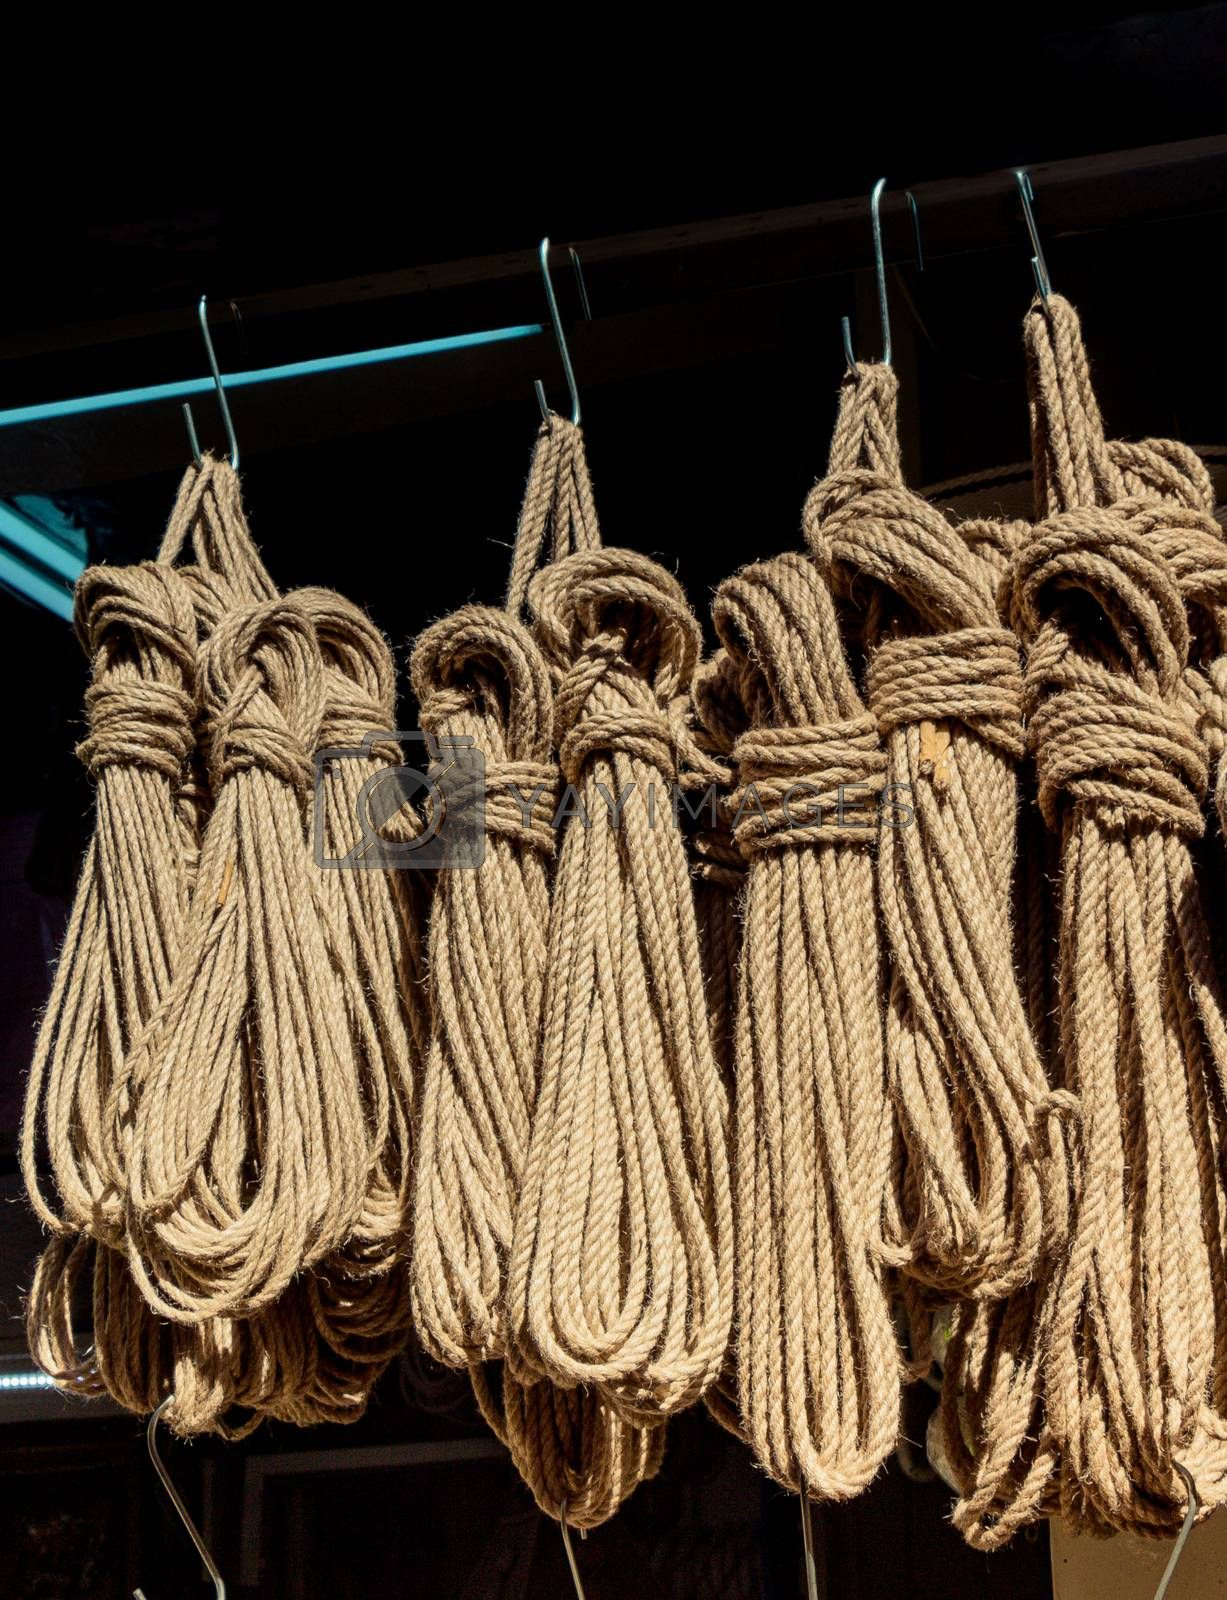 Bundle of linen rope  in a market place